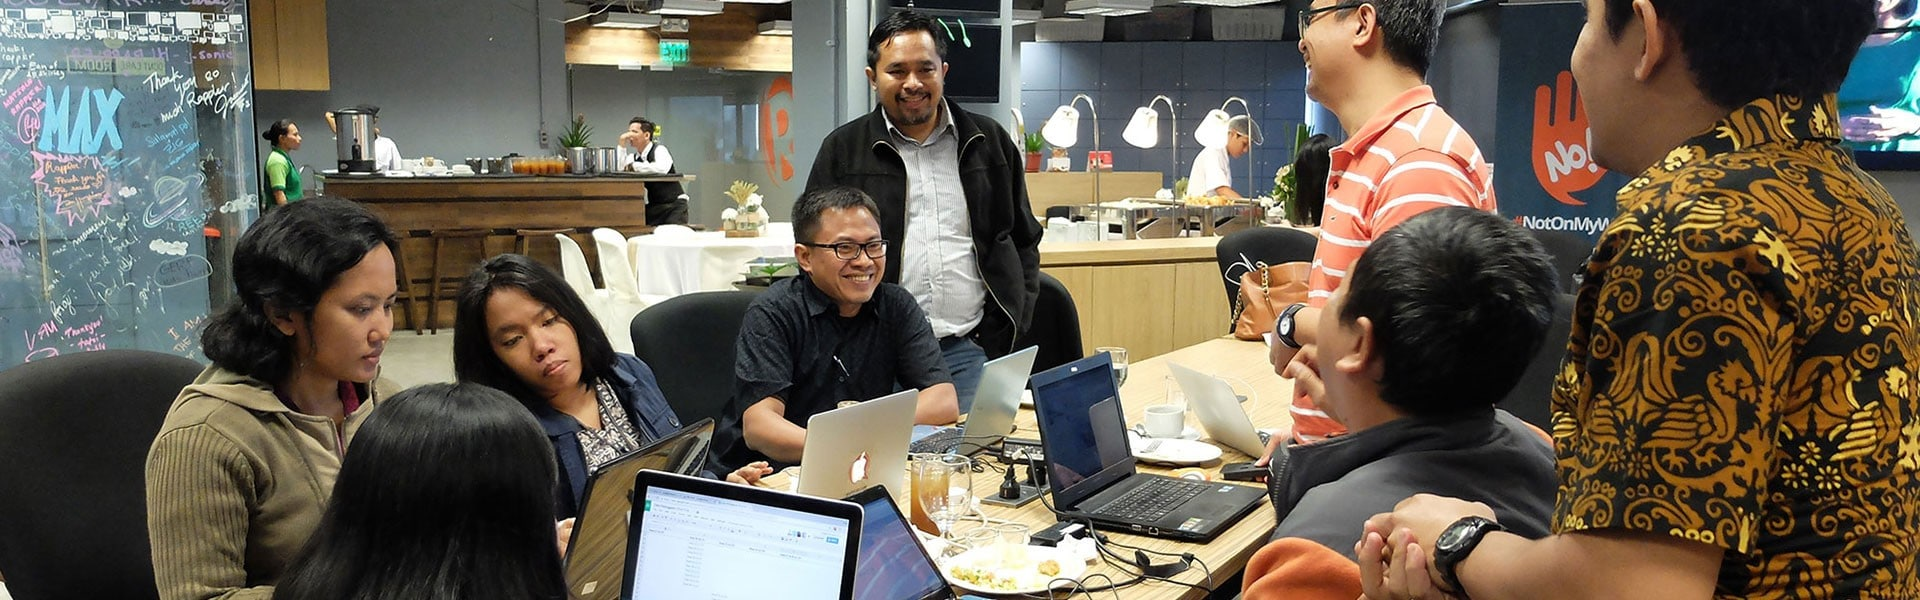 4M Asia: Data journalism training for media organizations in ASEAN countries